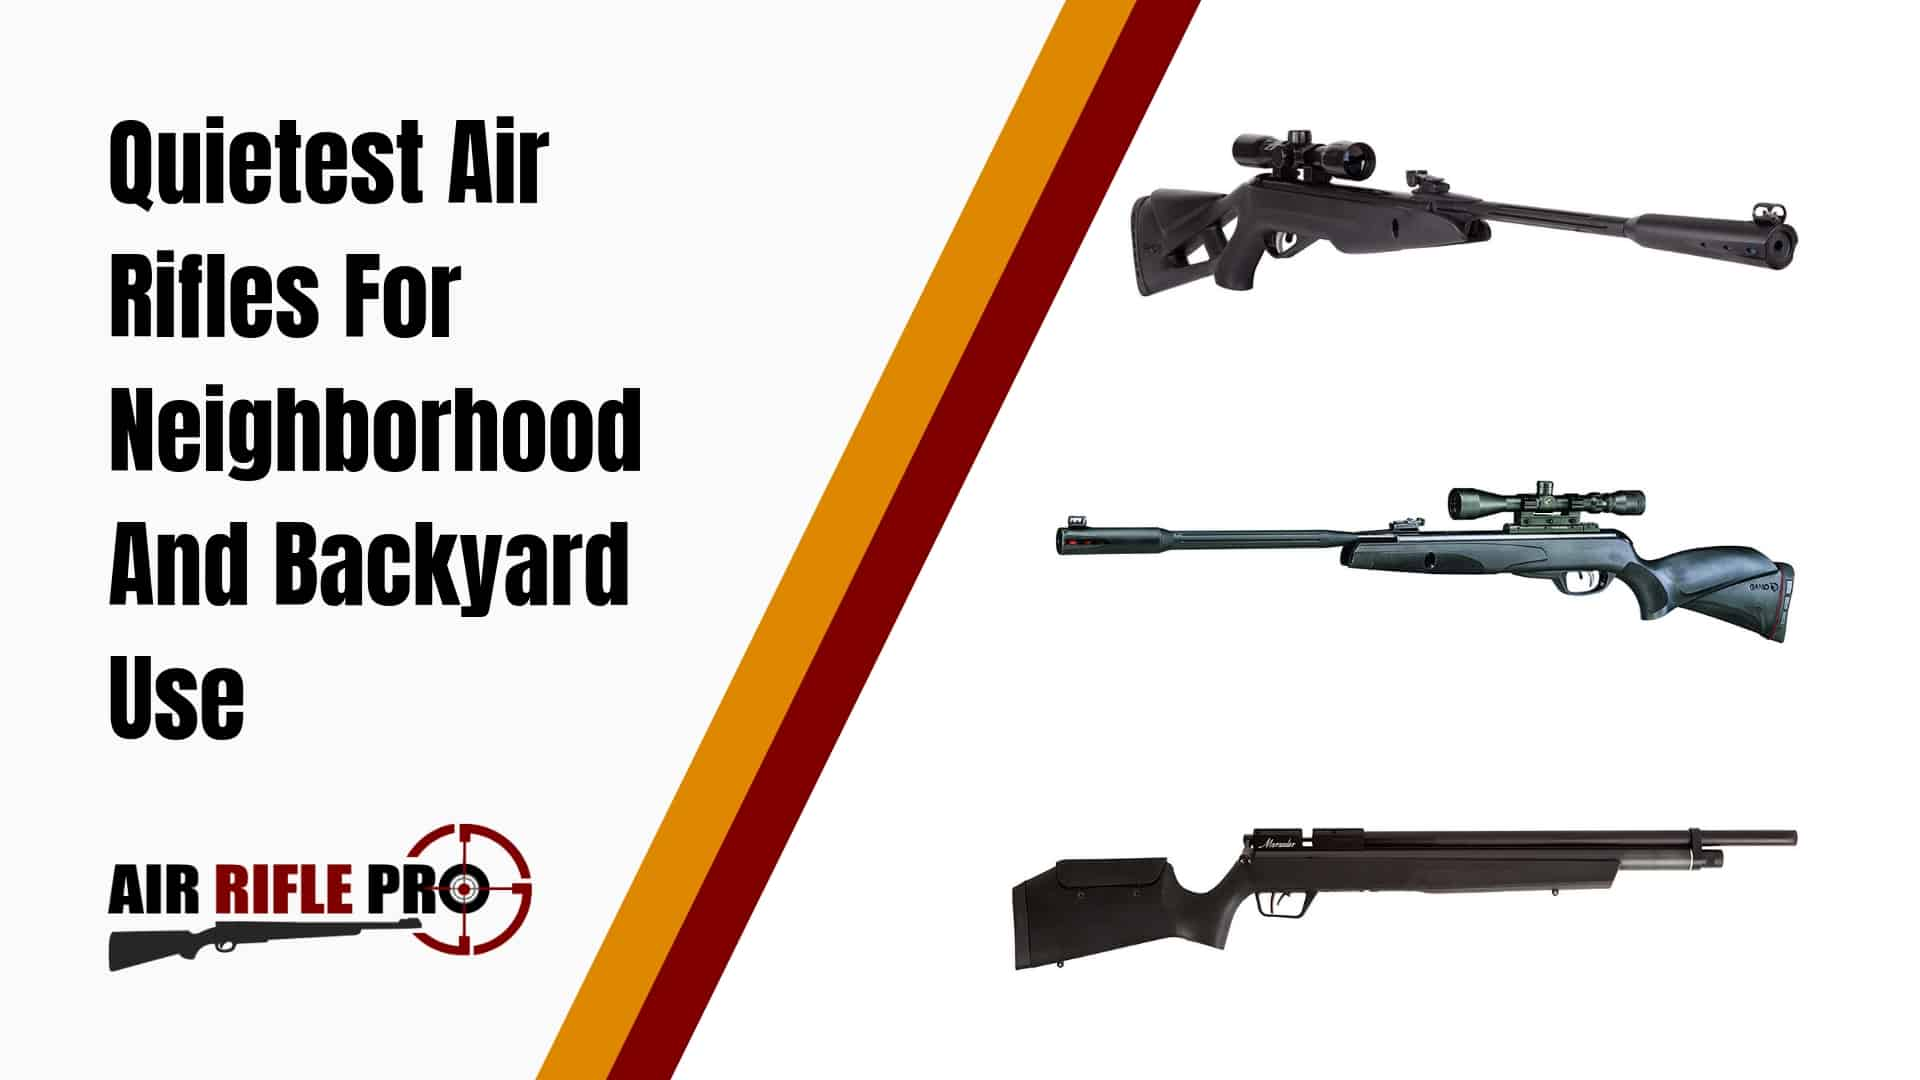 Quietest Air Rifles For Neighborhood and Backyard Use